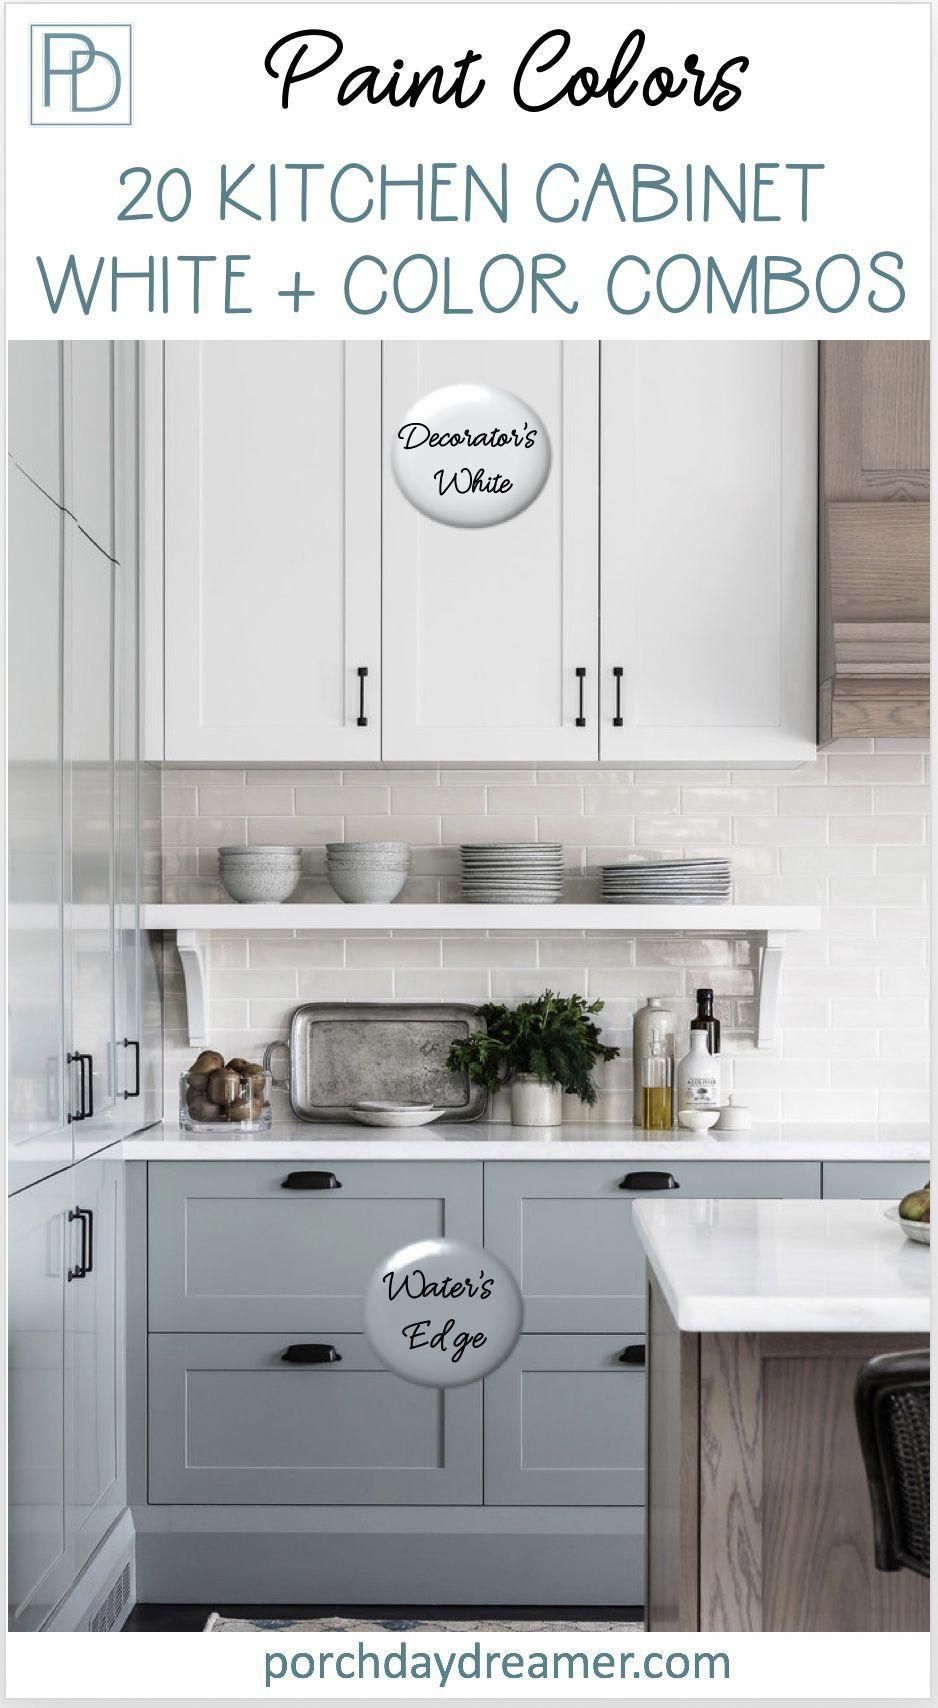 Check Out This Vital Photo And Also Take A Look At The Presented Info In 2020 Kitchen Cabinets Color Combination Kitchen Cabinet Trends Painted Kitchen Cabinets Colors